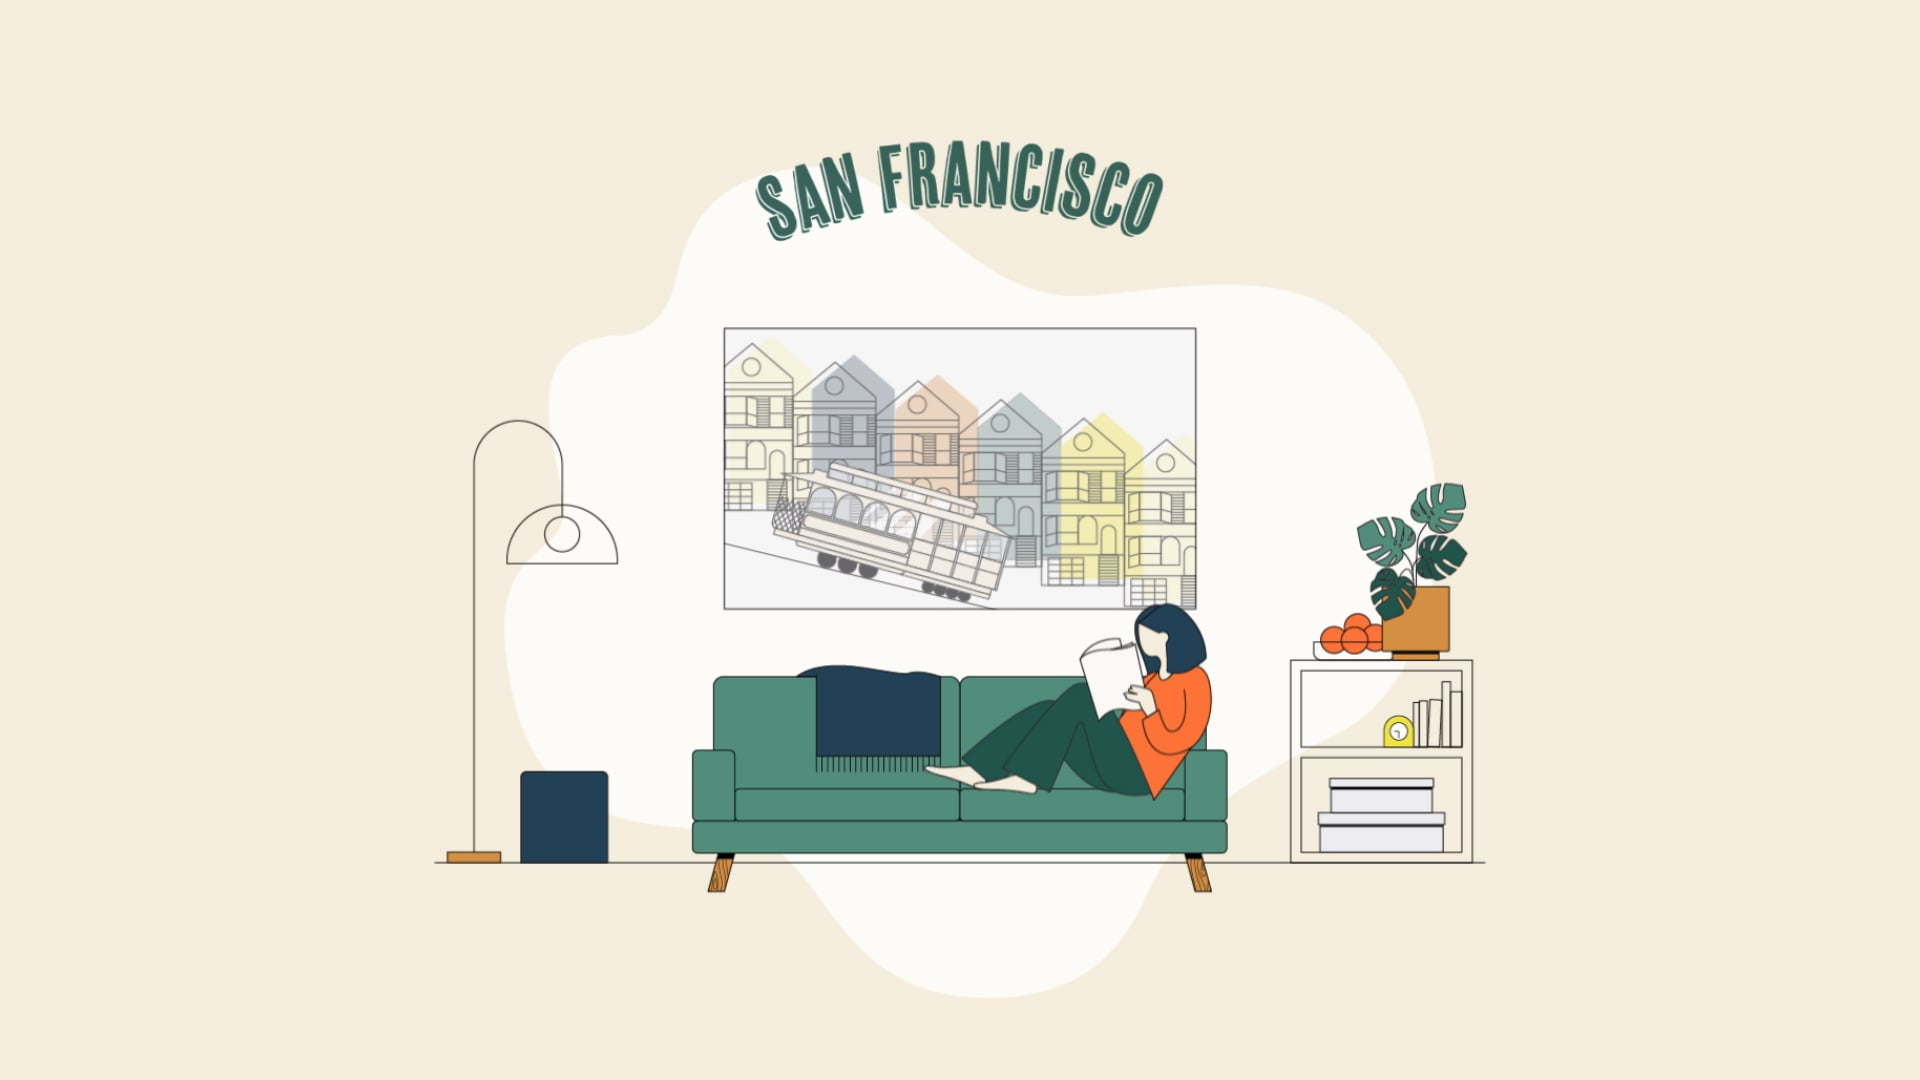 Landing | Leave Your Heart in SF